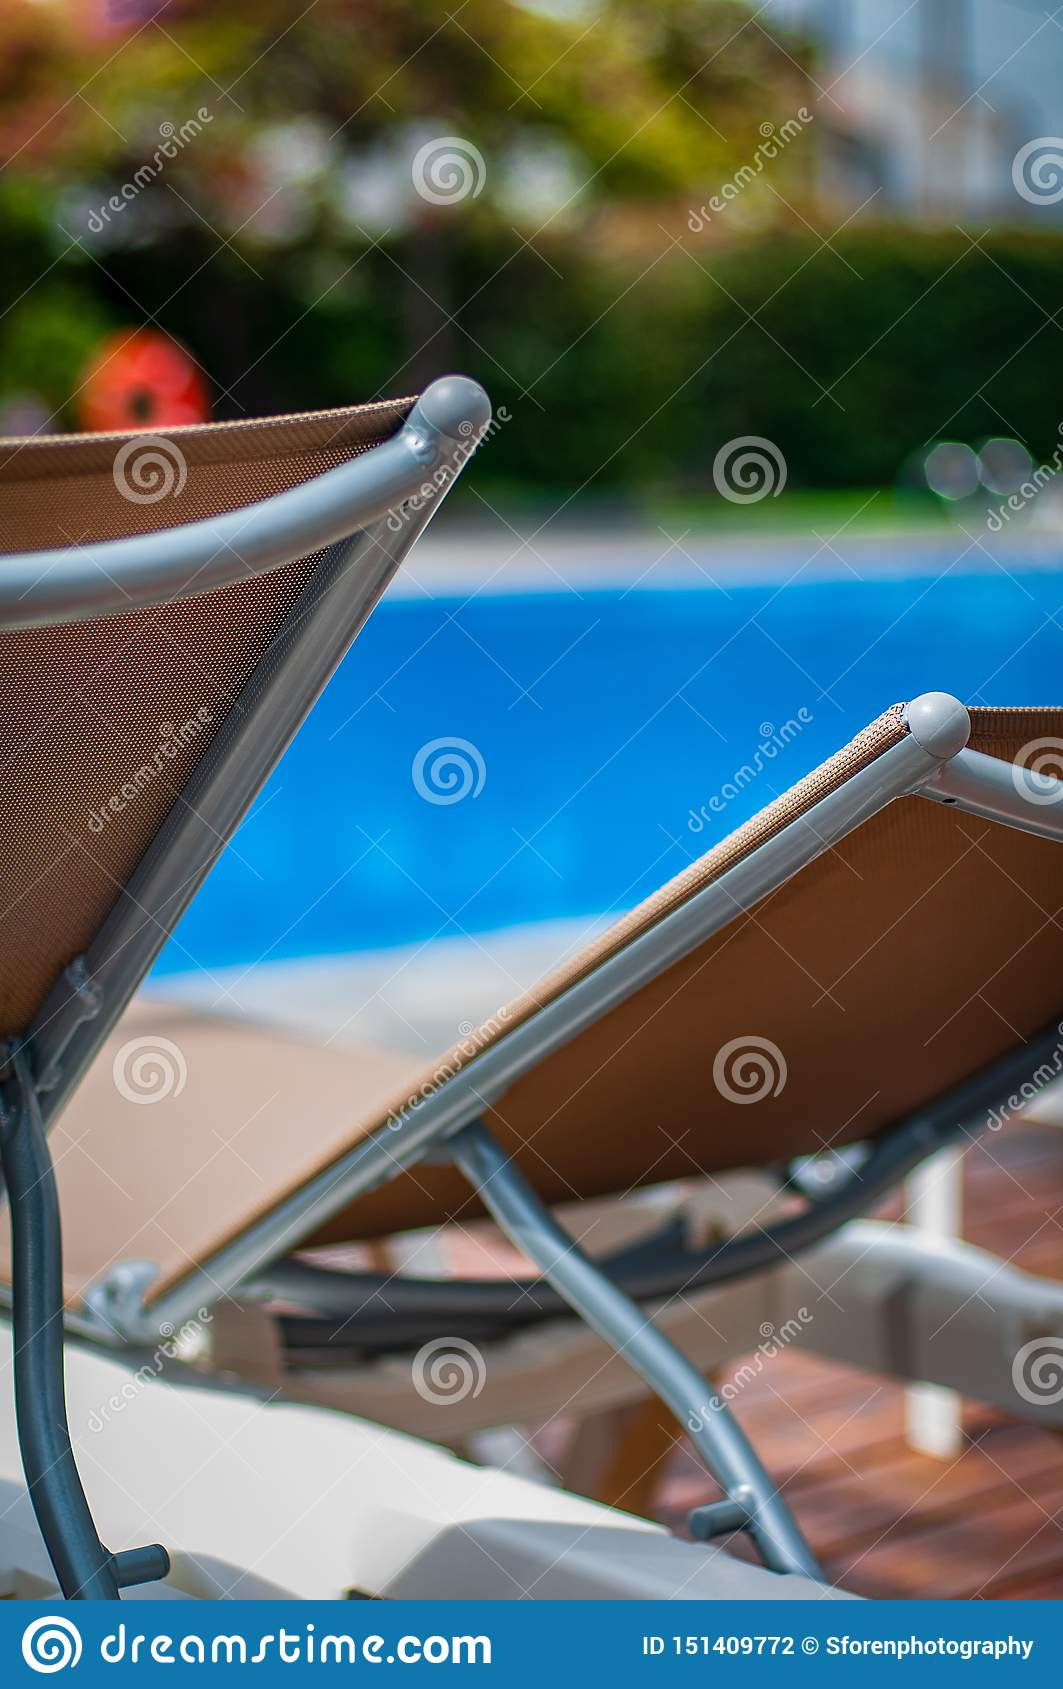 Time to relax and chill by the pool